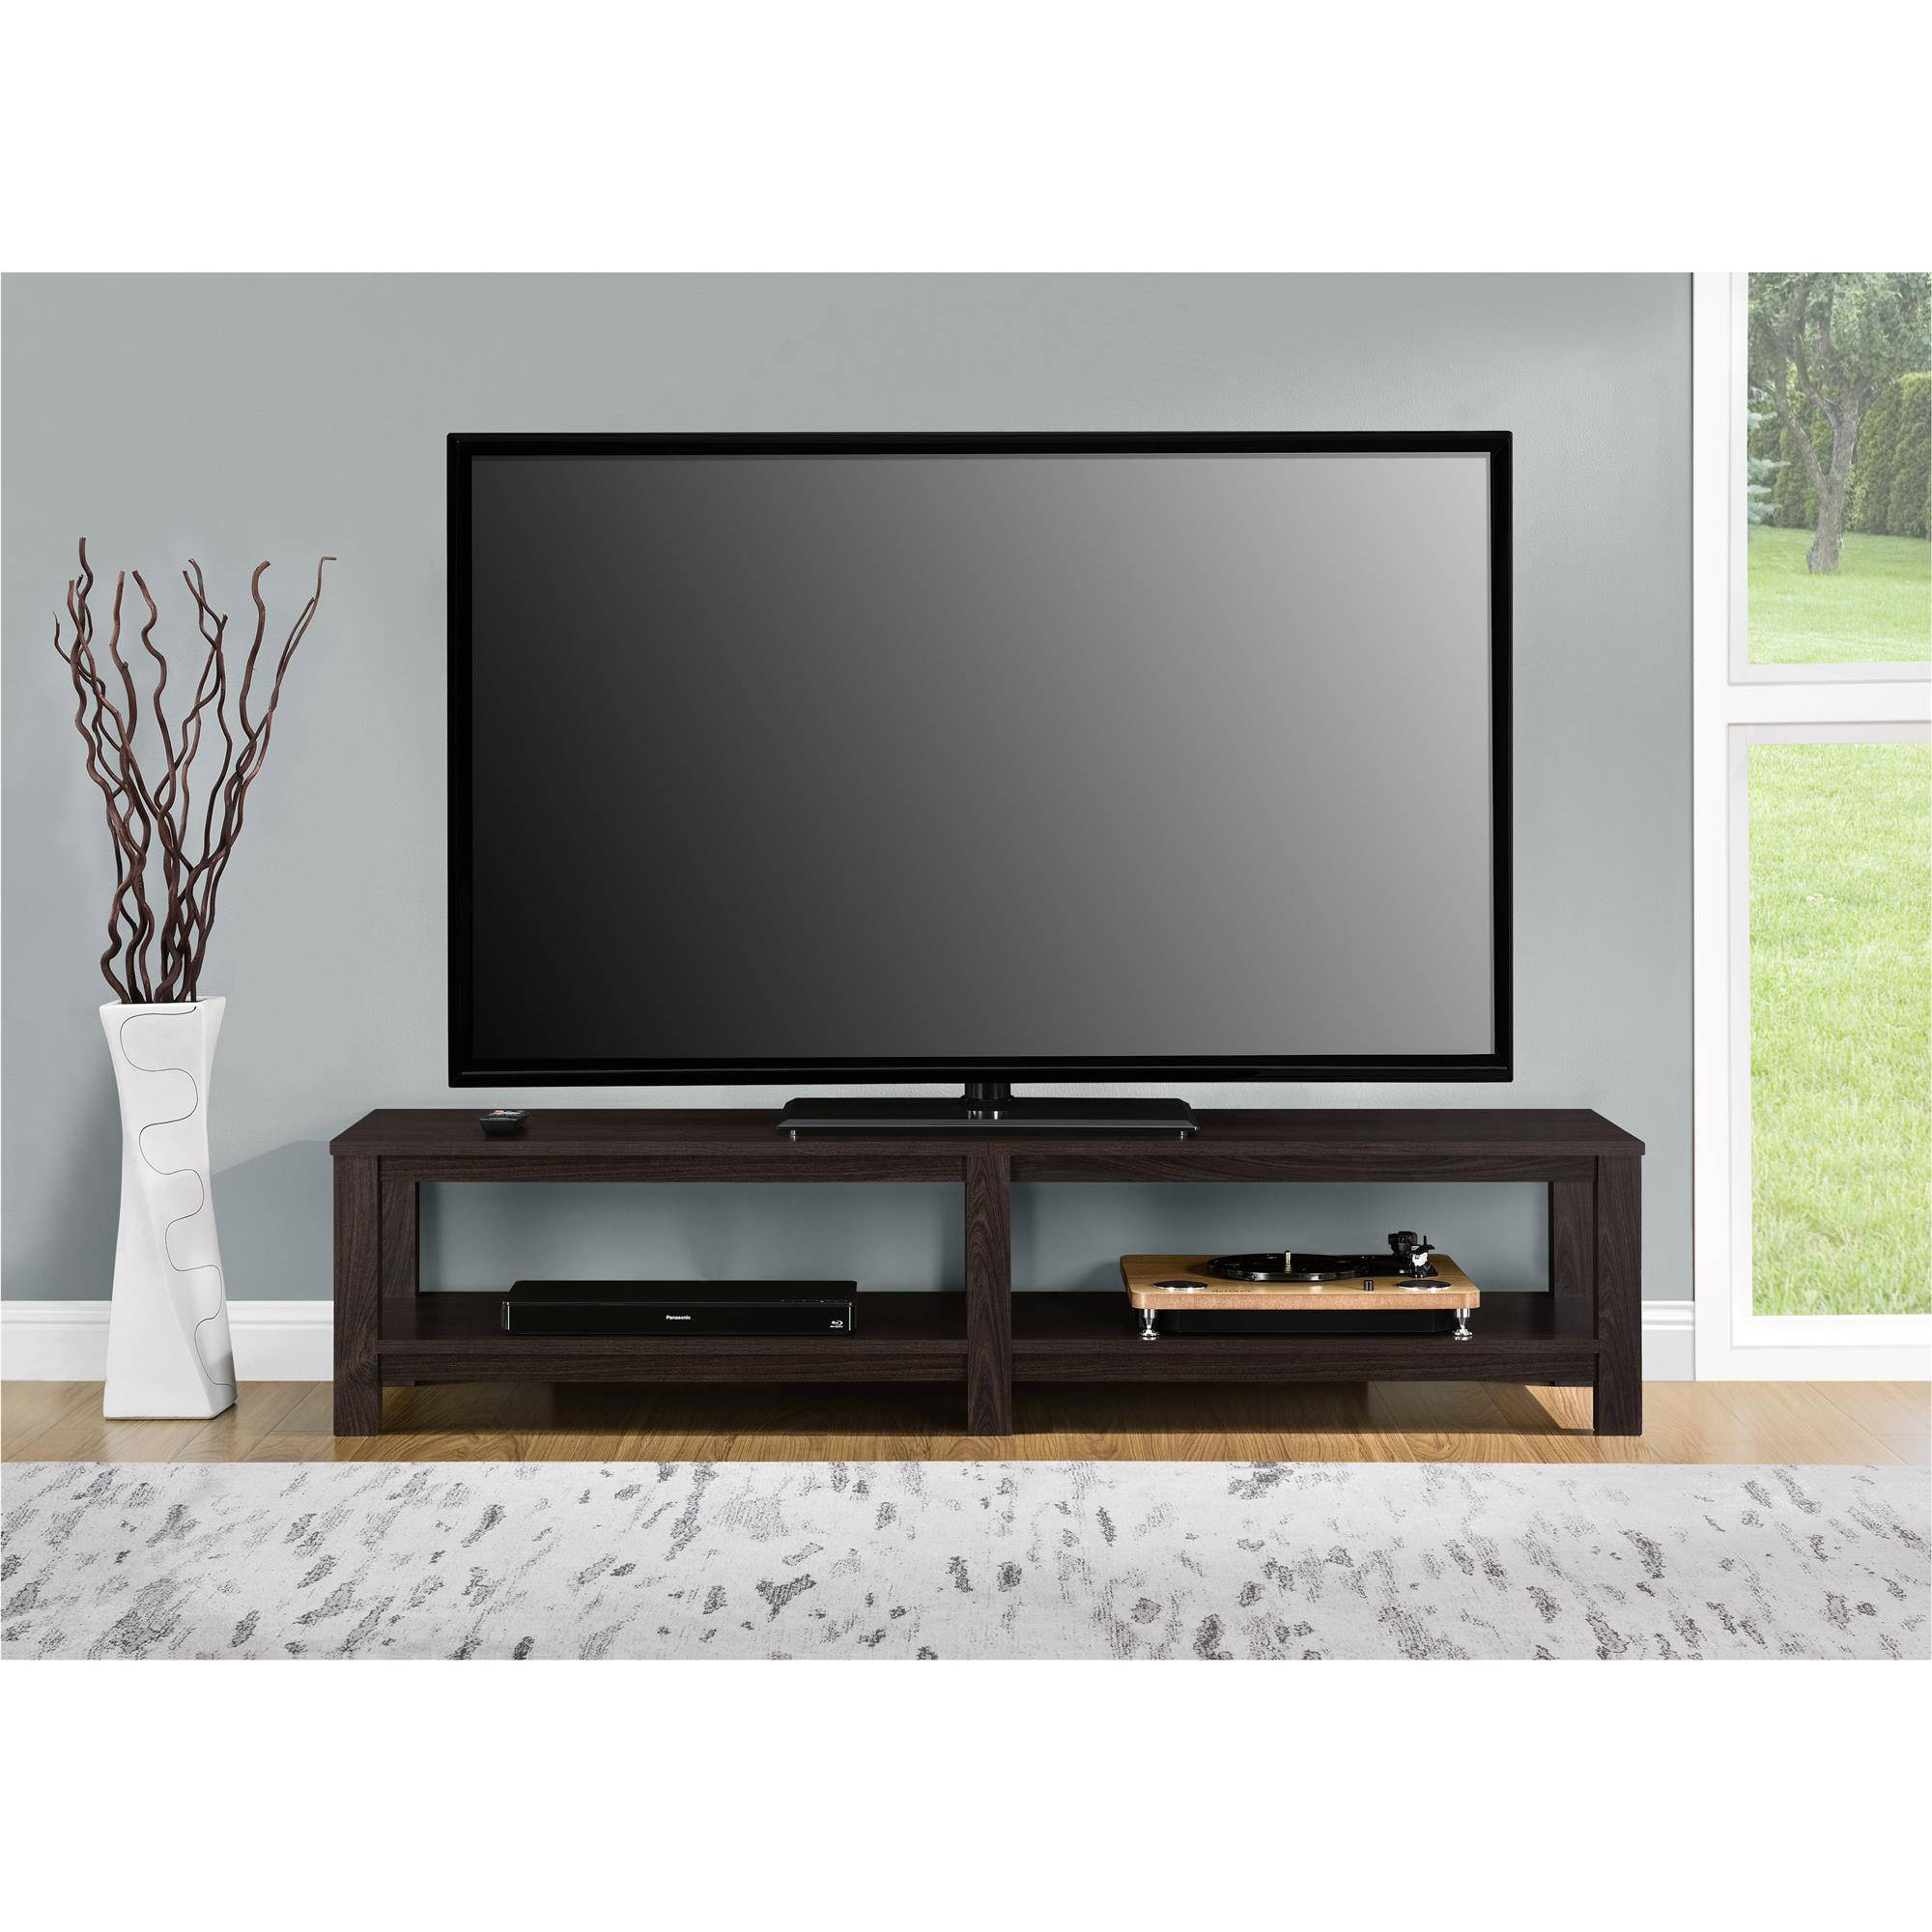 Sarah Tv Stands Mainstays Parsons Tv Stand For Tvs Up To 65